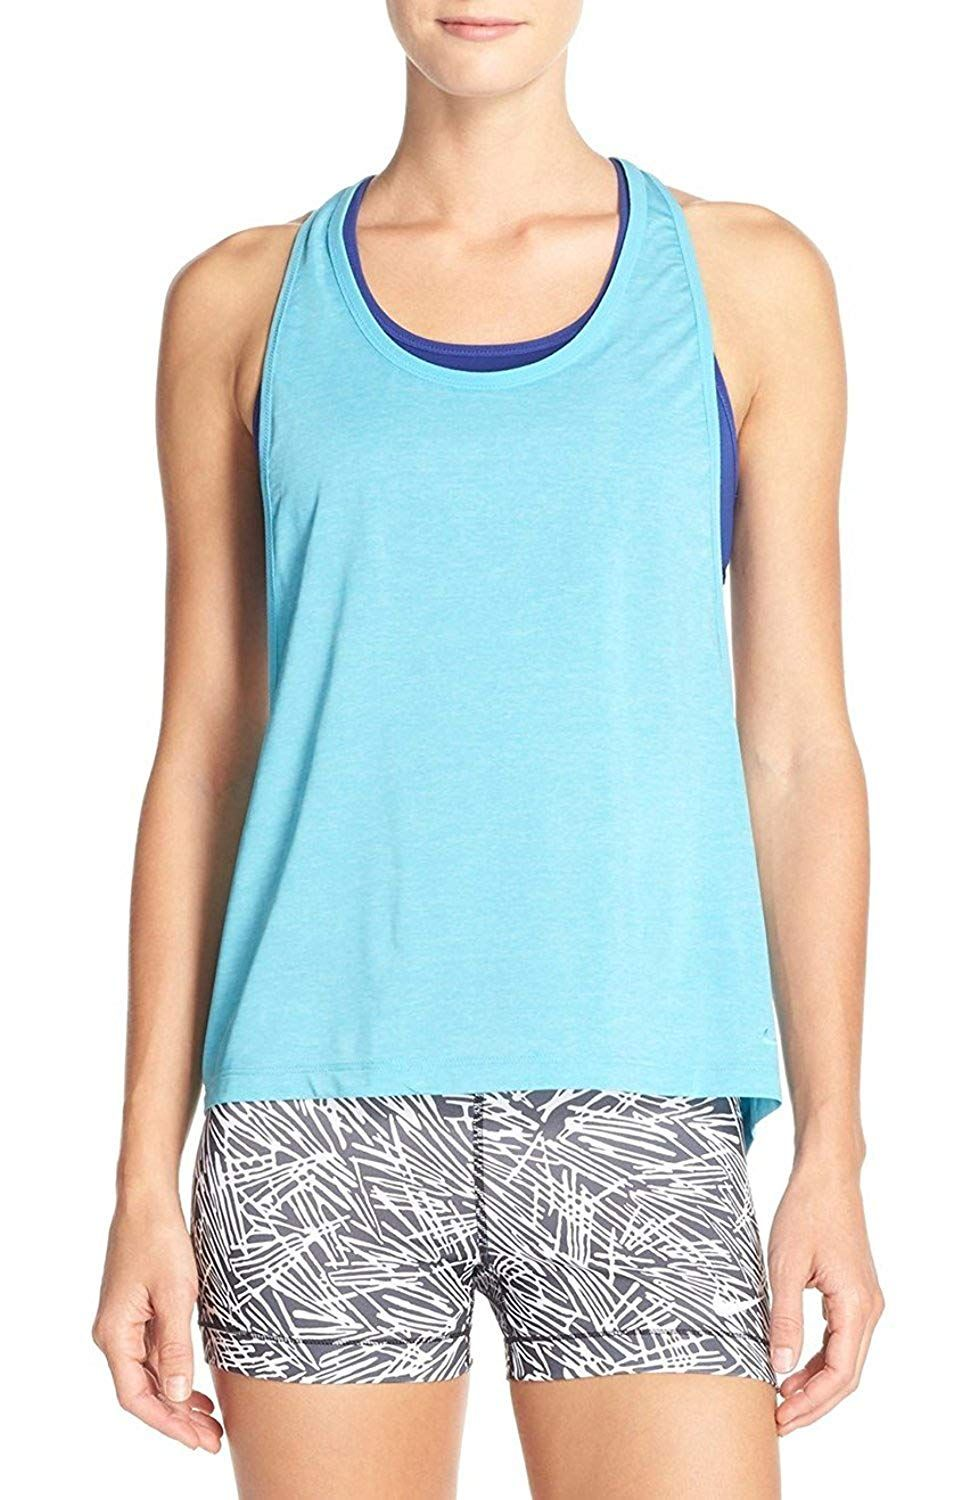 d0dce665af9 NIKE 2-In-1 Pro Loose Tank Top With Built In Bra. Breathable fabric, Built-in  sports bra, Omega blue with ocean-colored attached bra, Good for medium  impact ...